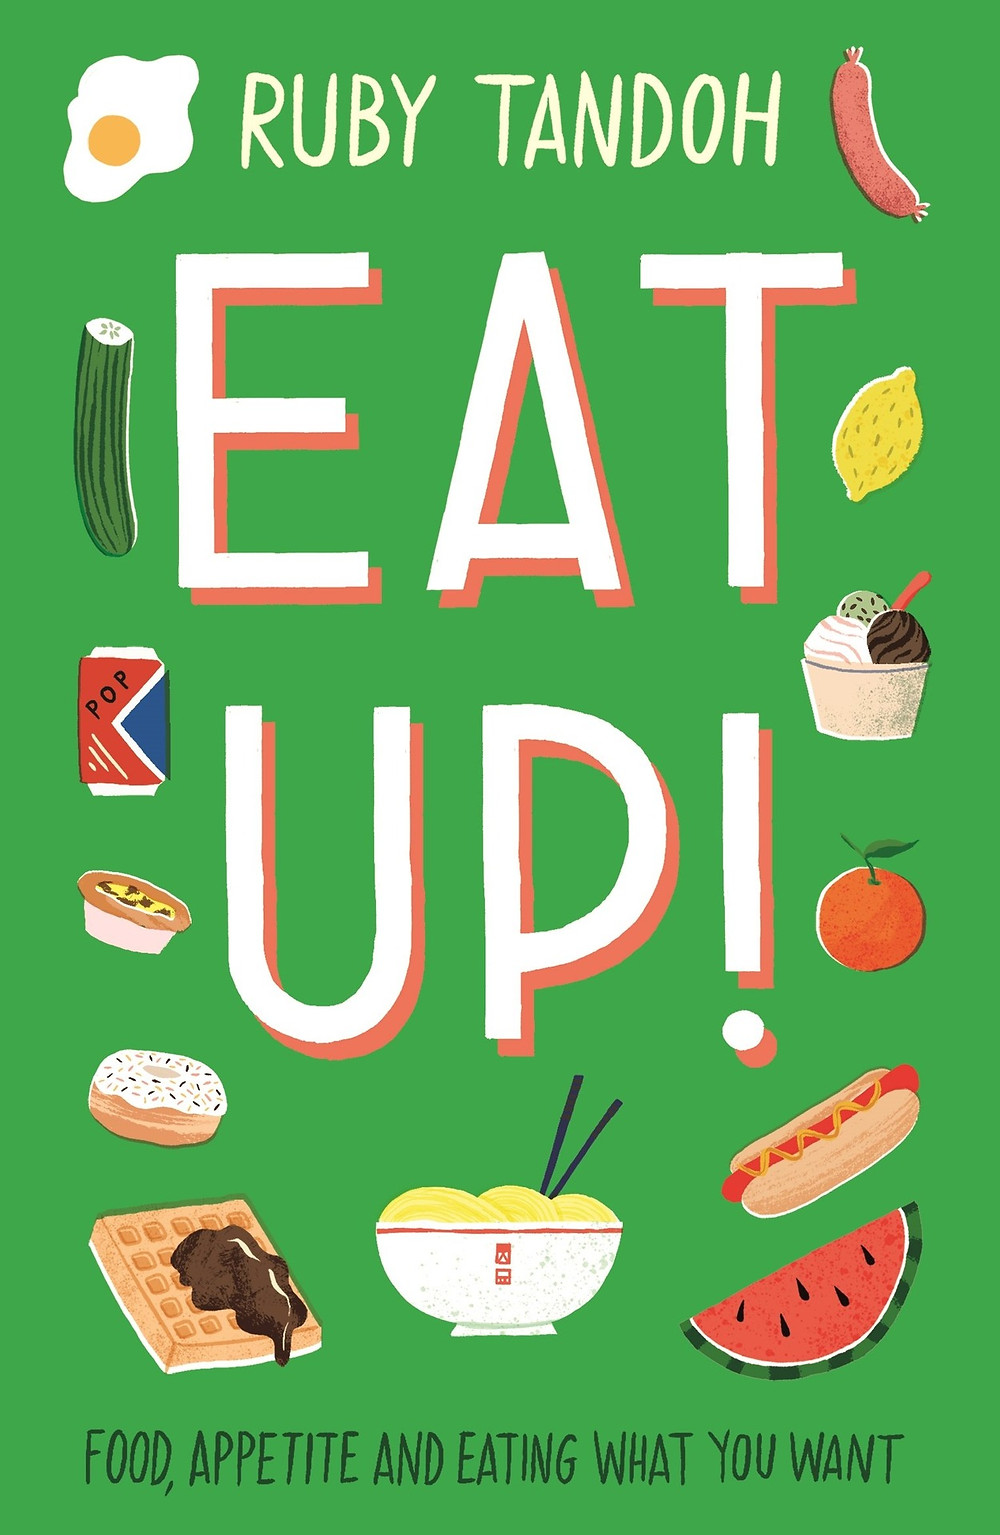 Eat Up: Food, Appetite and Eating What You Want Ruby Tandoh (Author) the book slut essays thebookslut book reviews. Think about that first tickle of hunger in your stomach. A moment ago, you could have been thinking about anything, but now it's thickly buttered toast, a frosty scoop of ice cream straight from the tub, some creamy, cheesy scrambled eggs or a fuzzy, perfectly-ripe peach. Eating is one of life's greatest pleasures. Food nourishes our bodies, helps us celebrate our successes (from a wedding cake to a post-night out kebab), cheers us up when we're down, introduces us to new cultures and - when we cook and eat together - connects us with the people we love. In Eat Up, Ruby Tandoh celebrates the fun and pleasure of food, taking a look at everything from gluttons and gourmets in the movies, to the symbolism of food and sex. She will arm you against the fad diets, food crazes and bad science that can make eating guilt-laden and expensive, drawing eating inspiration from influences as diverse as Roald Dahl, Nora Ephron and more. Filled with straight-talking, sympathetic advice on everything from mental health to recipe ideas and shopping tips, this is a book that clears away the fog, to help you fall back in love with food. Product Details Price: $15.95  $14.67 Publisher: Serpent's Tail Published Date: April 30, 2019 Pages: 256 Dimensions: 5.1 X 0.8 X 7.8 inches | 0.45 pounds Language: English Type: Paperback ISBN: 9781781259603 BISAC Categories: Agriculture & Food